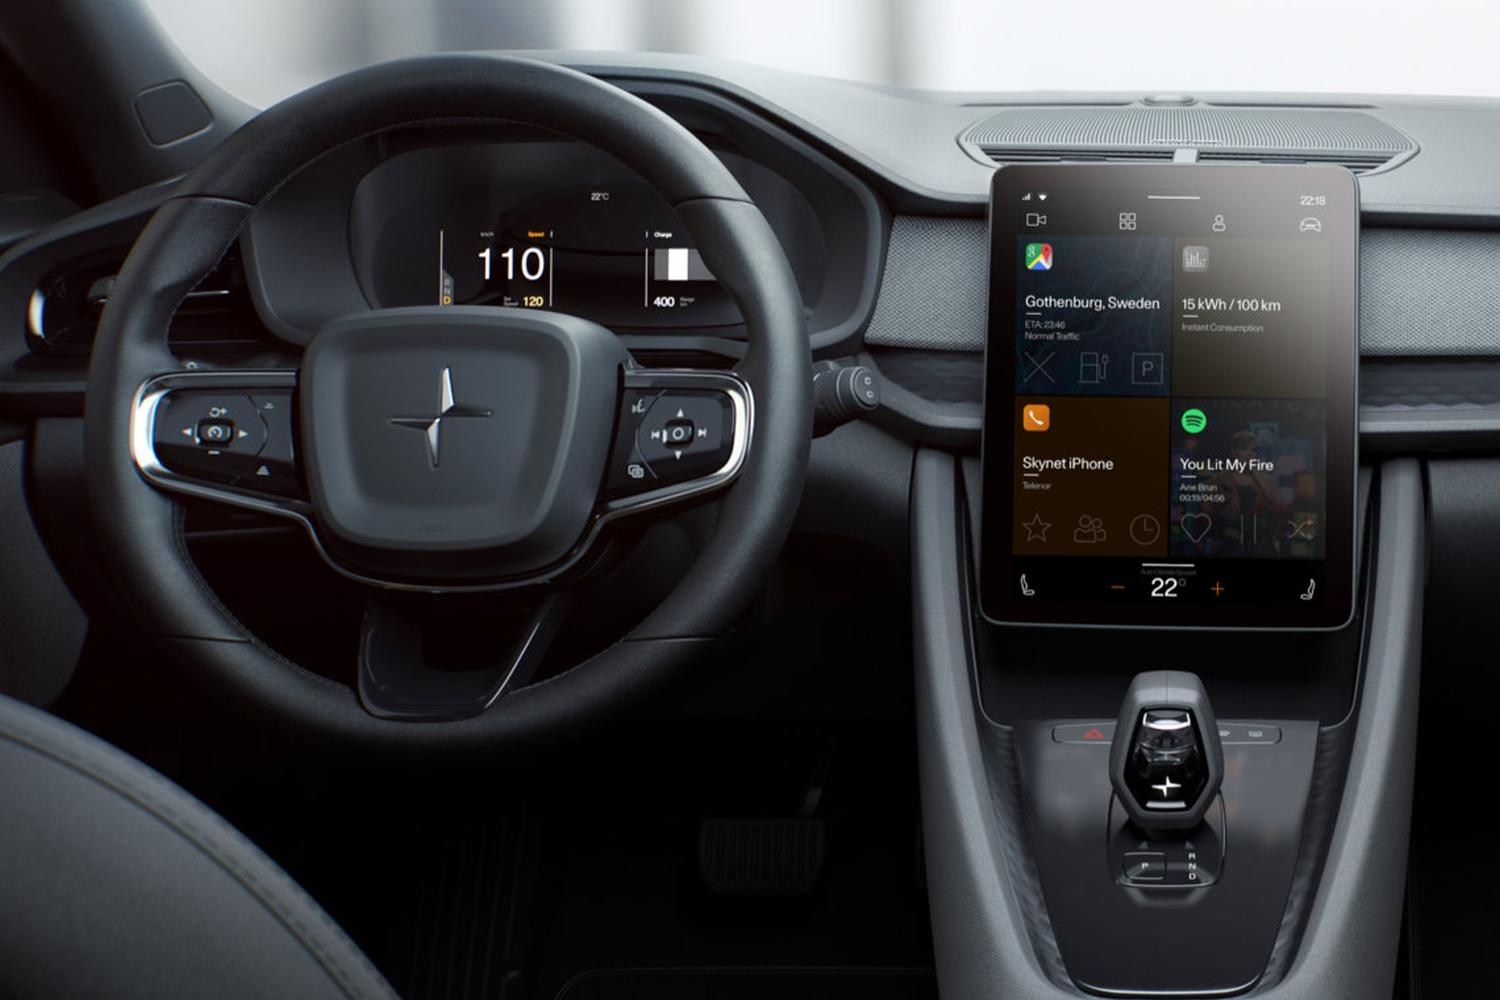 Android Auto: Googles neues Betriebssystem Android Automotive im E-Auto Polestar Precept (Galerie & Video)